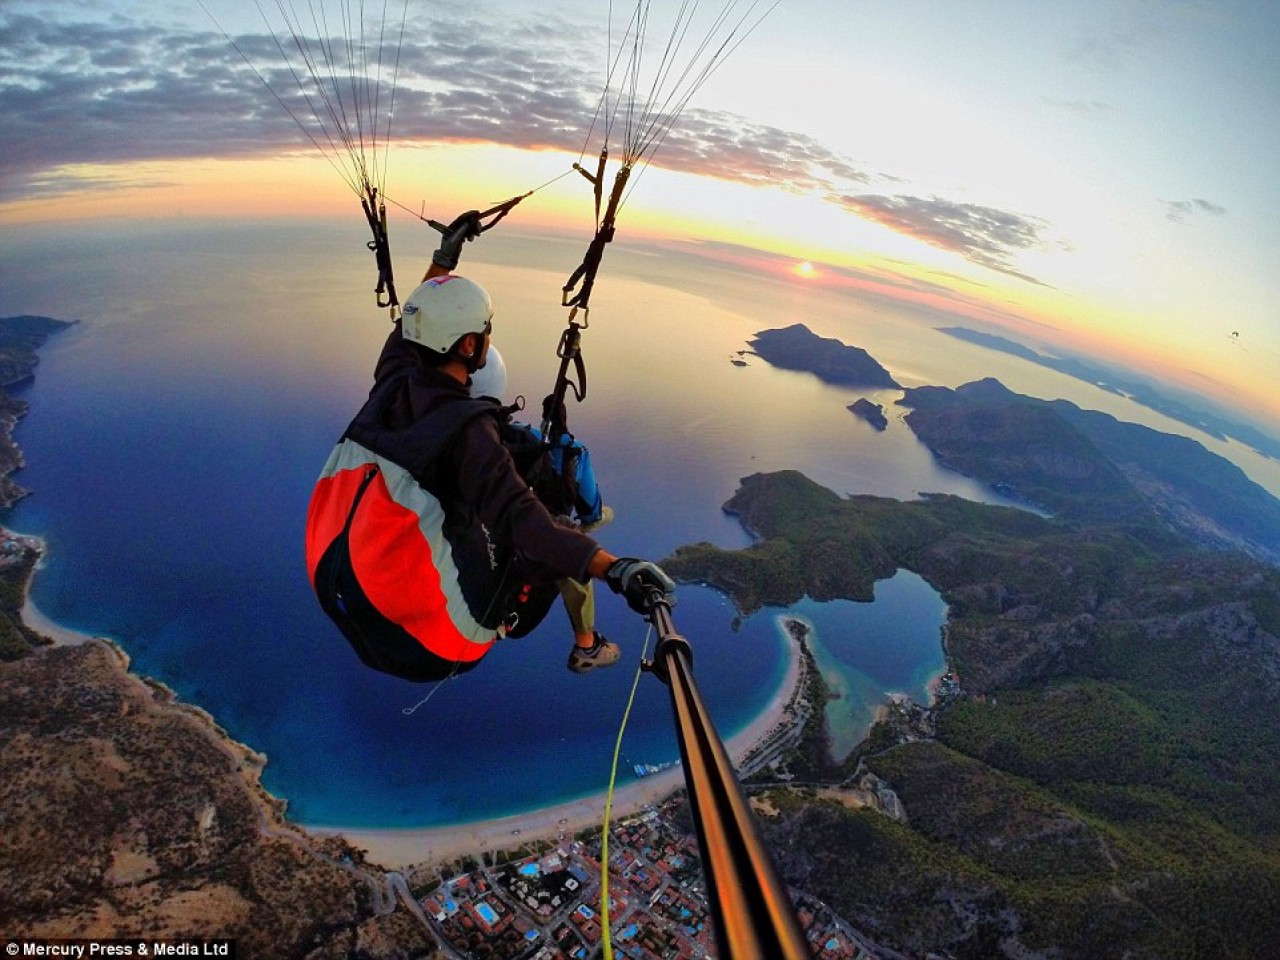 Experience Flying Over Halkidiki